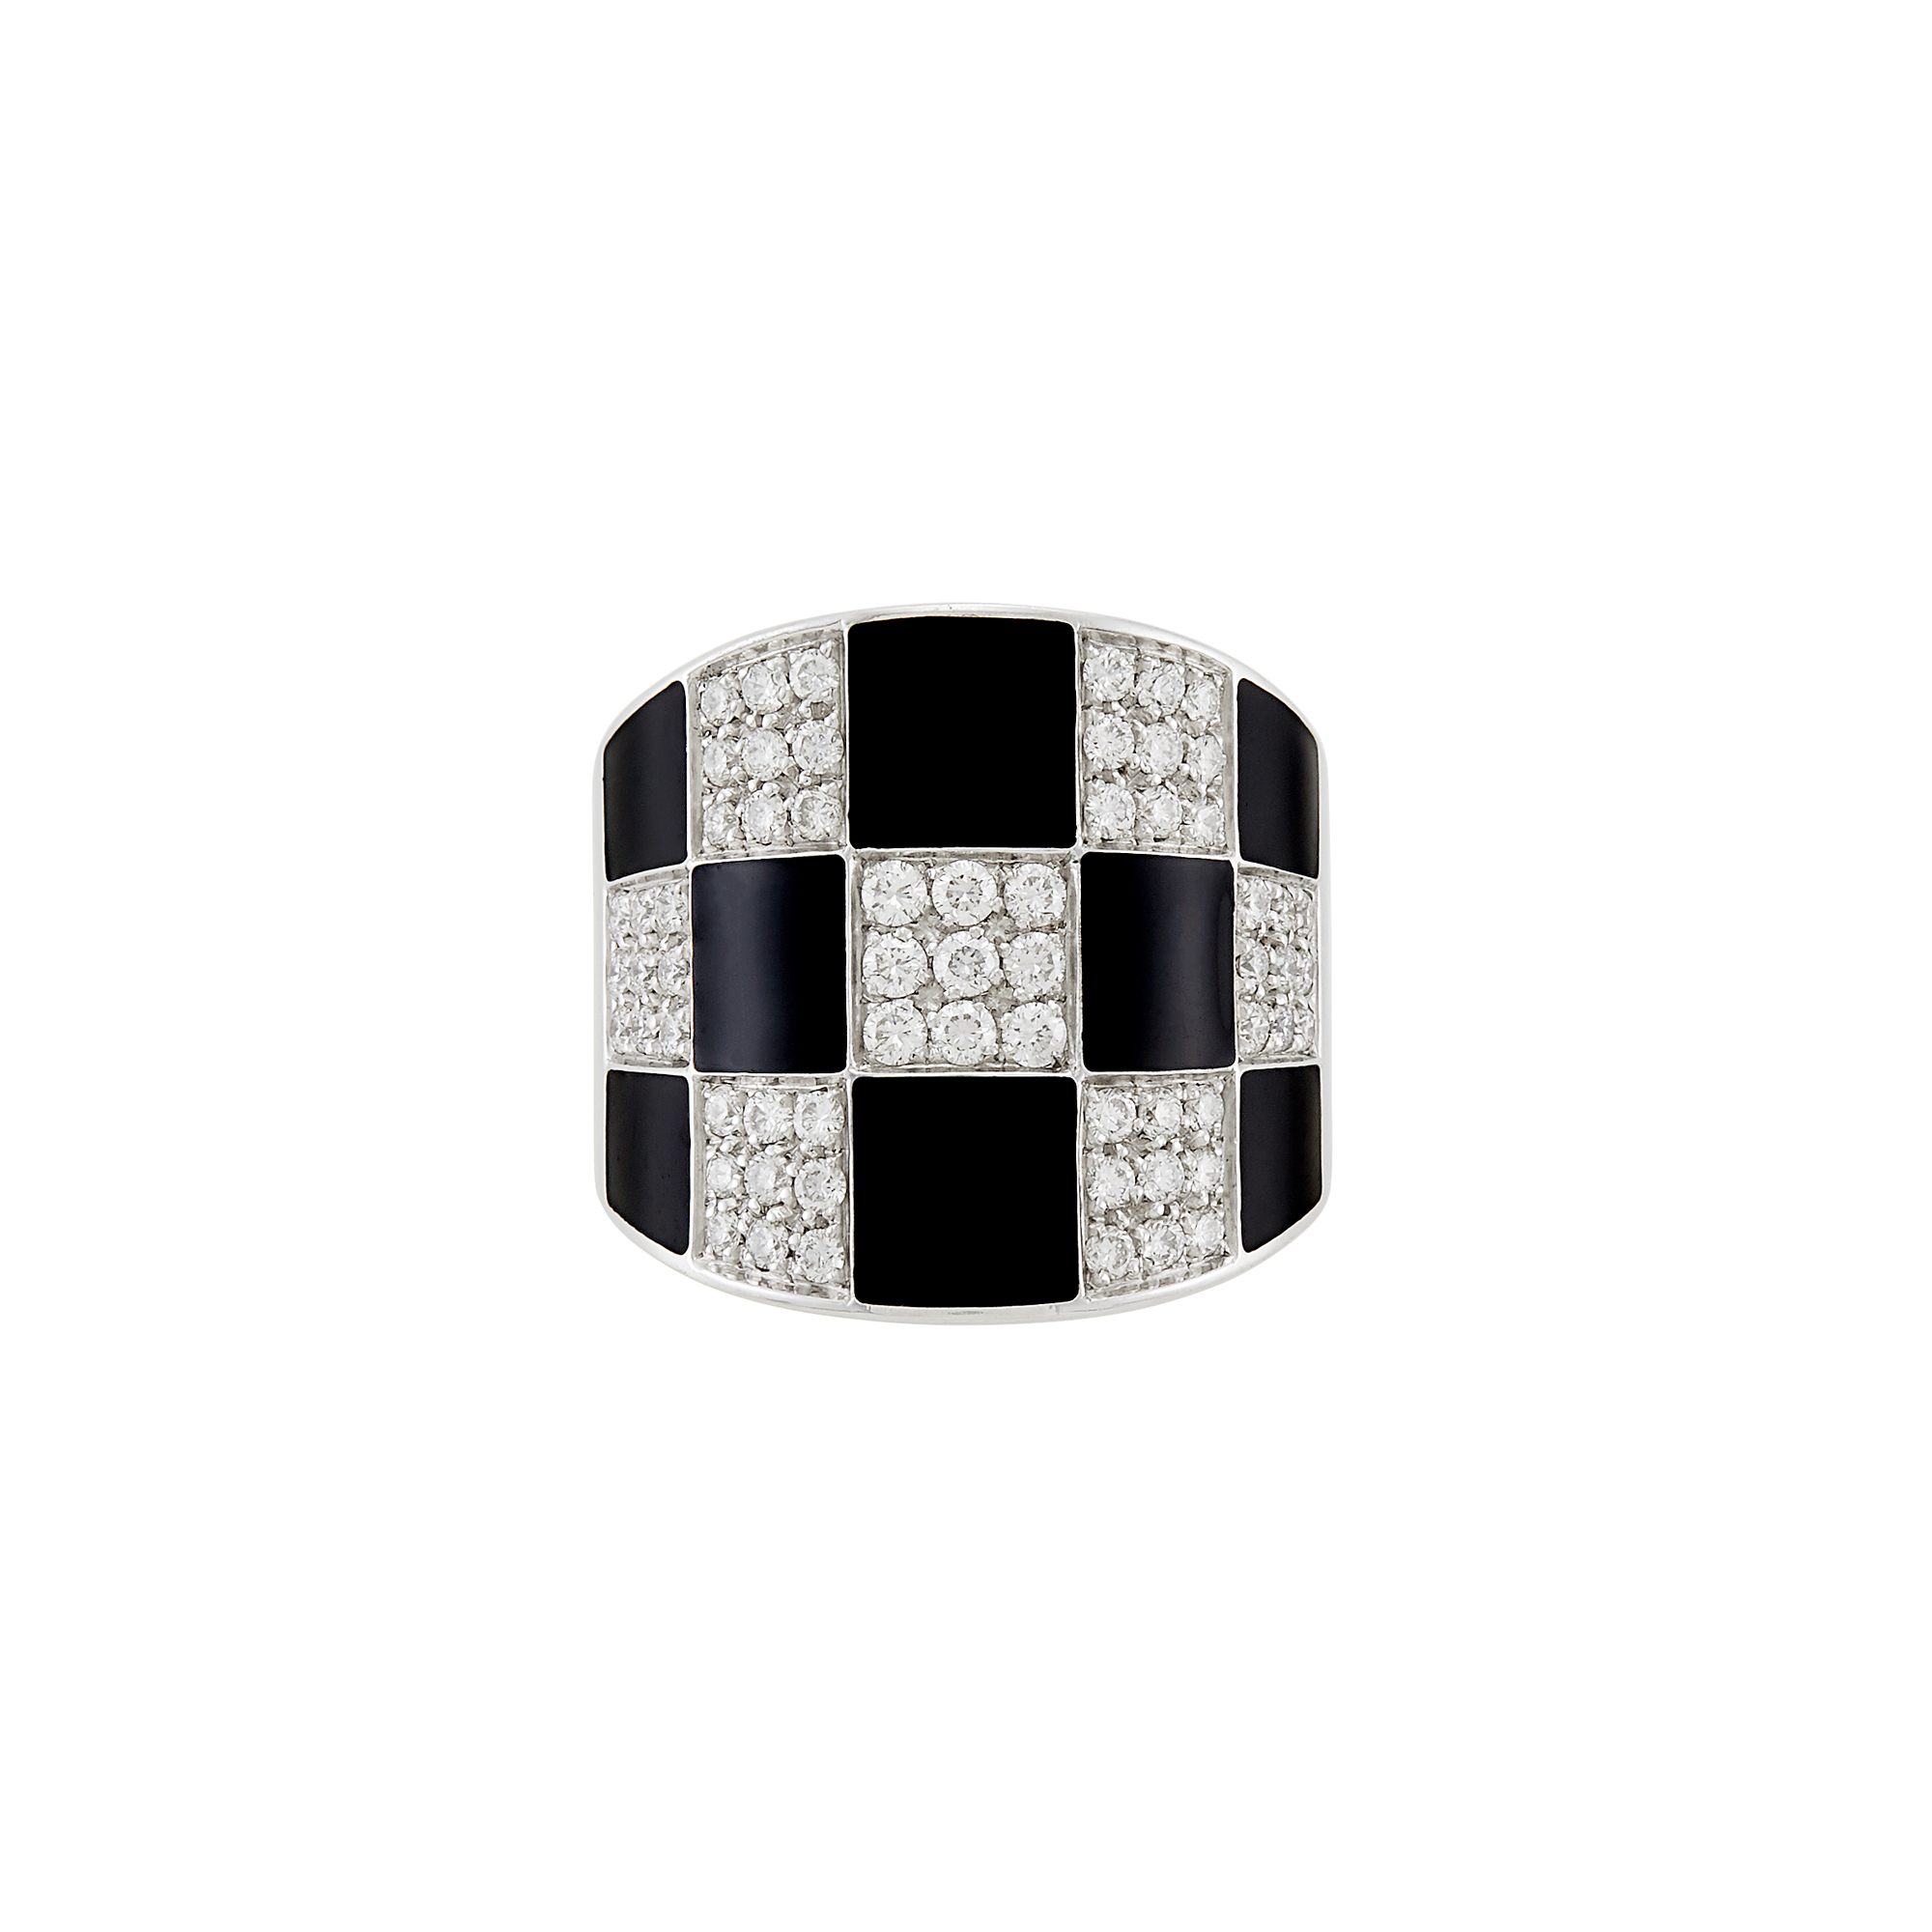 Lot image - Wide White Gold, Diamond and Black Enamel Ring, Enigma